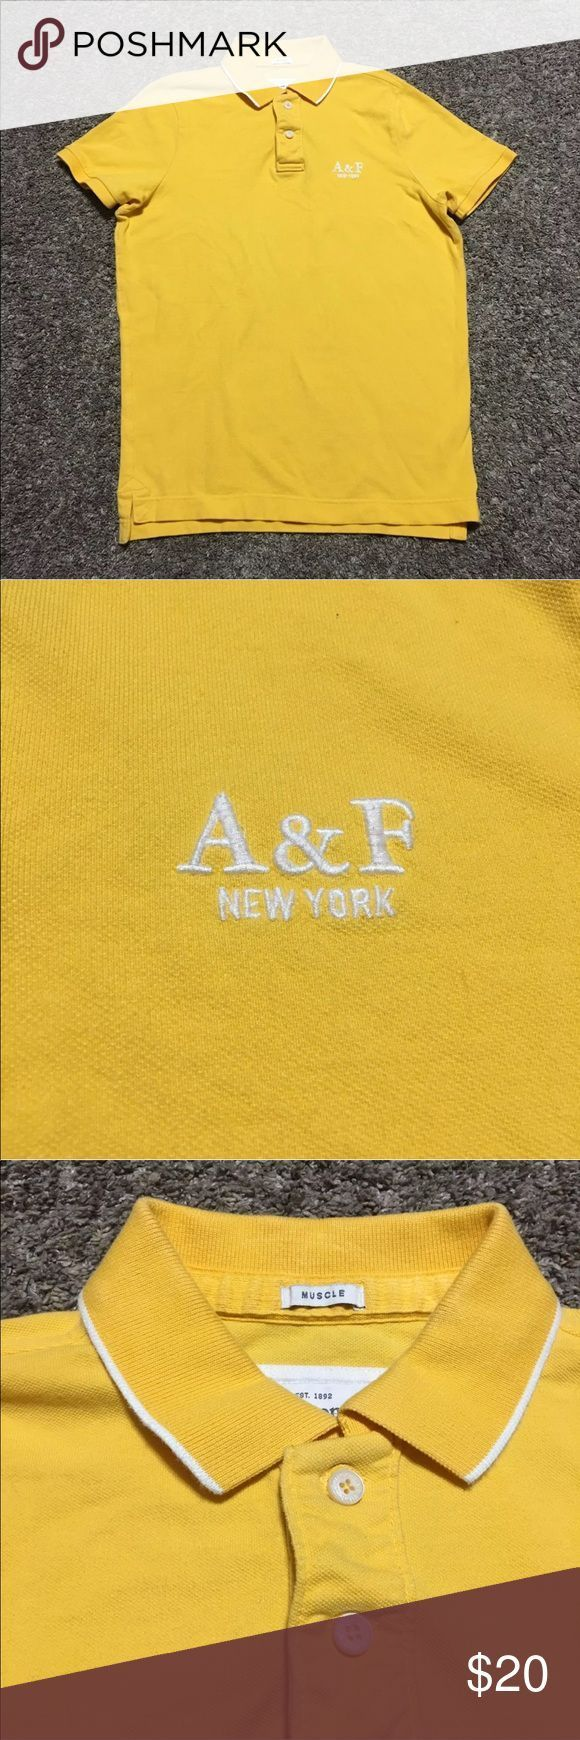 Abercrombie & Fitch Muscle A&F New York Shirt MEASUREMENTS(in inches, taken wh…